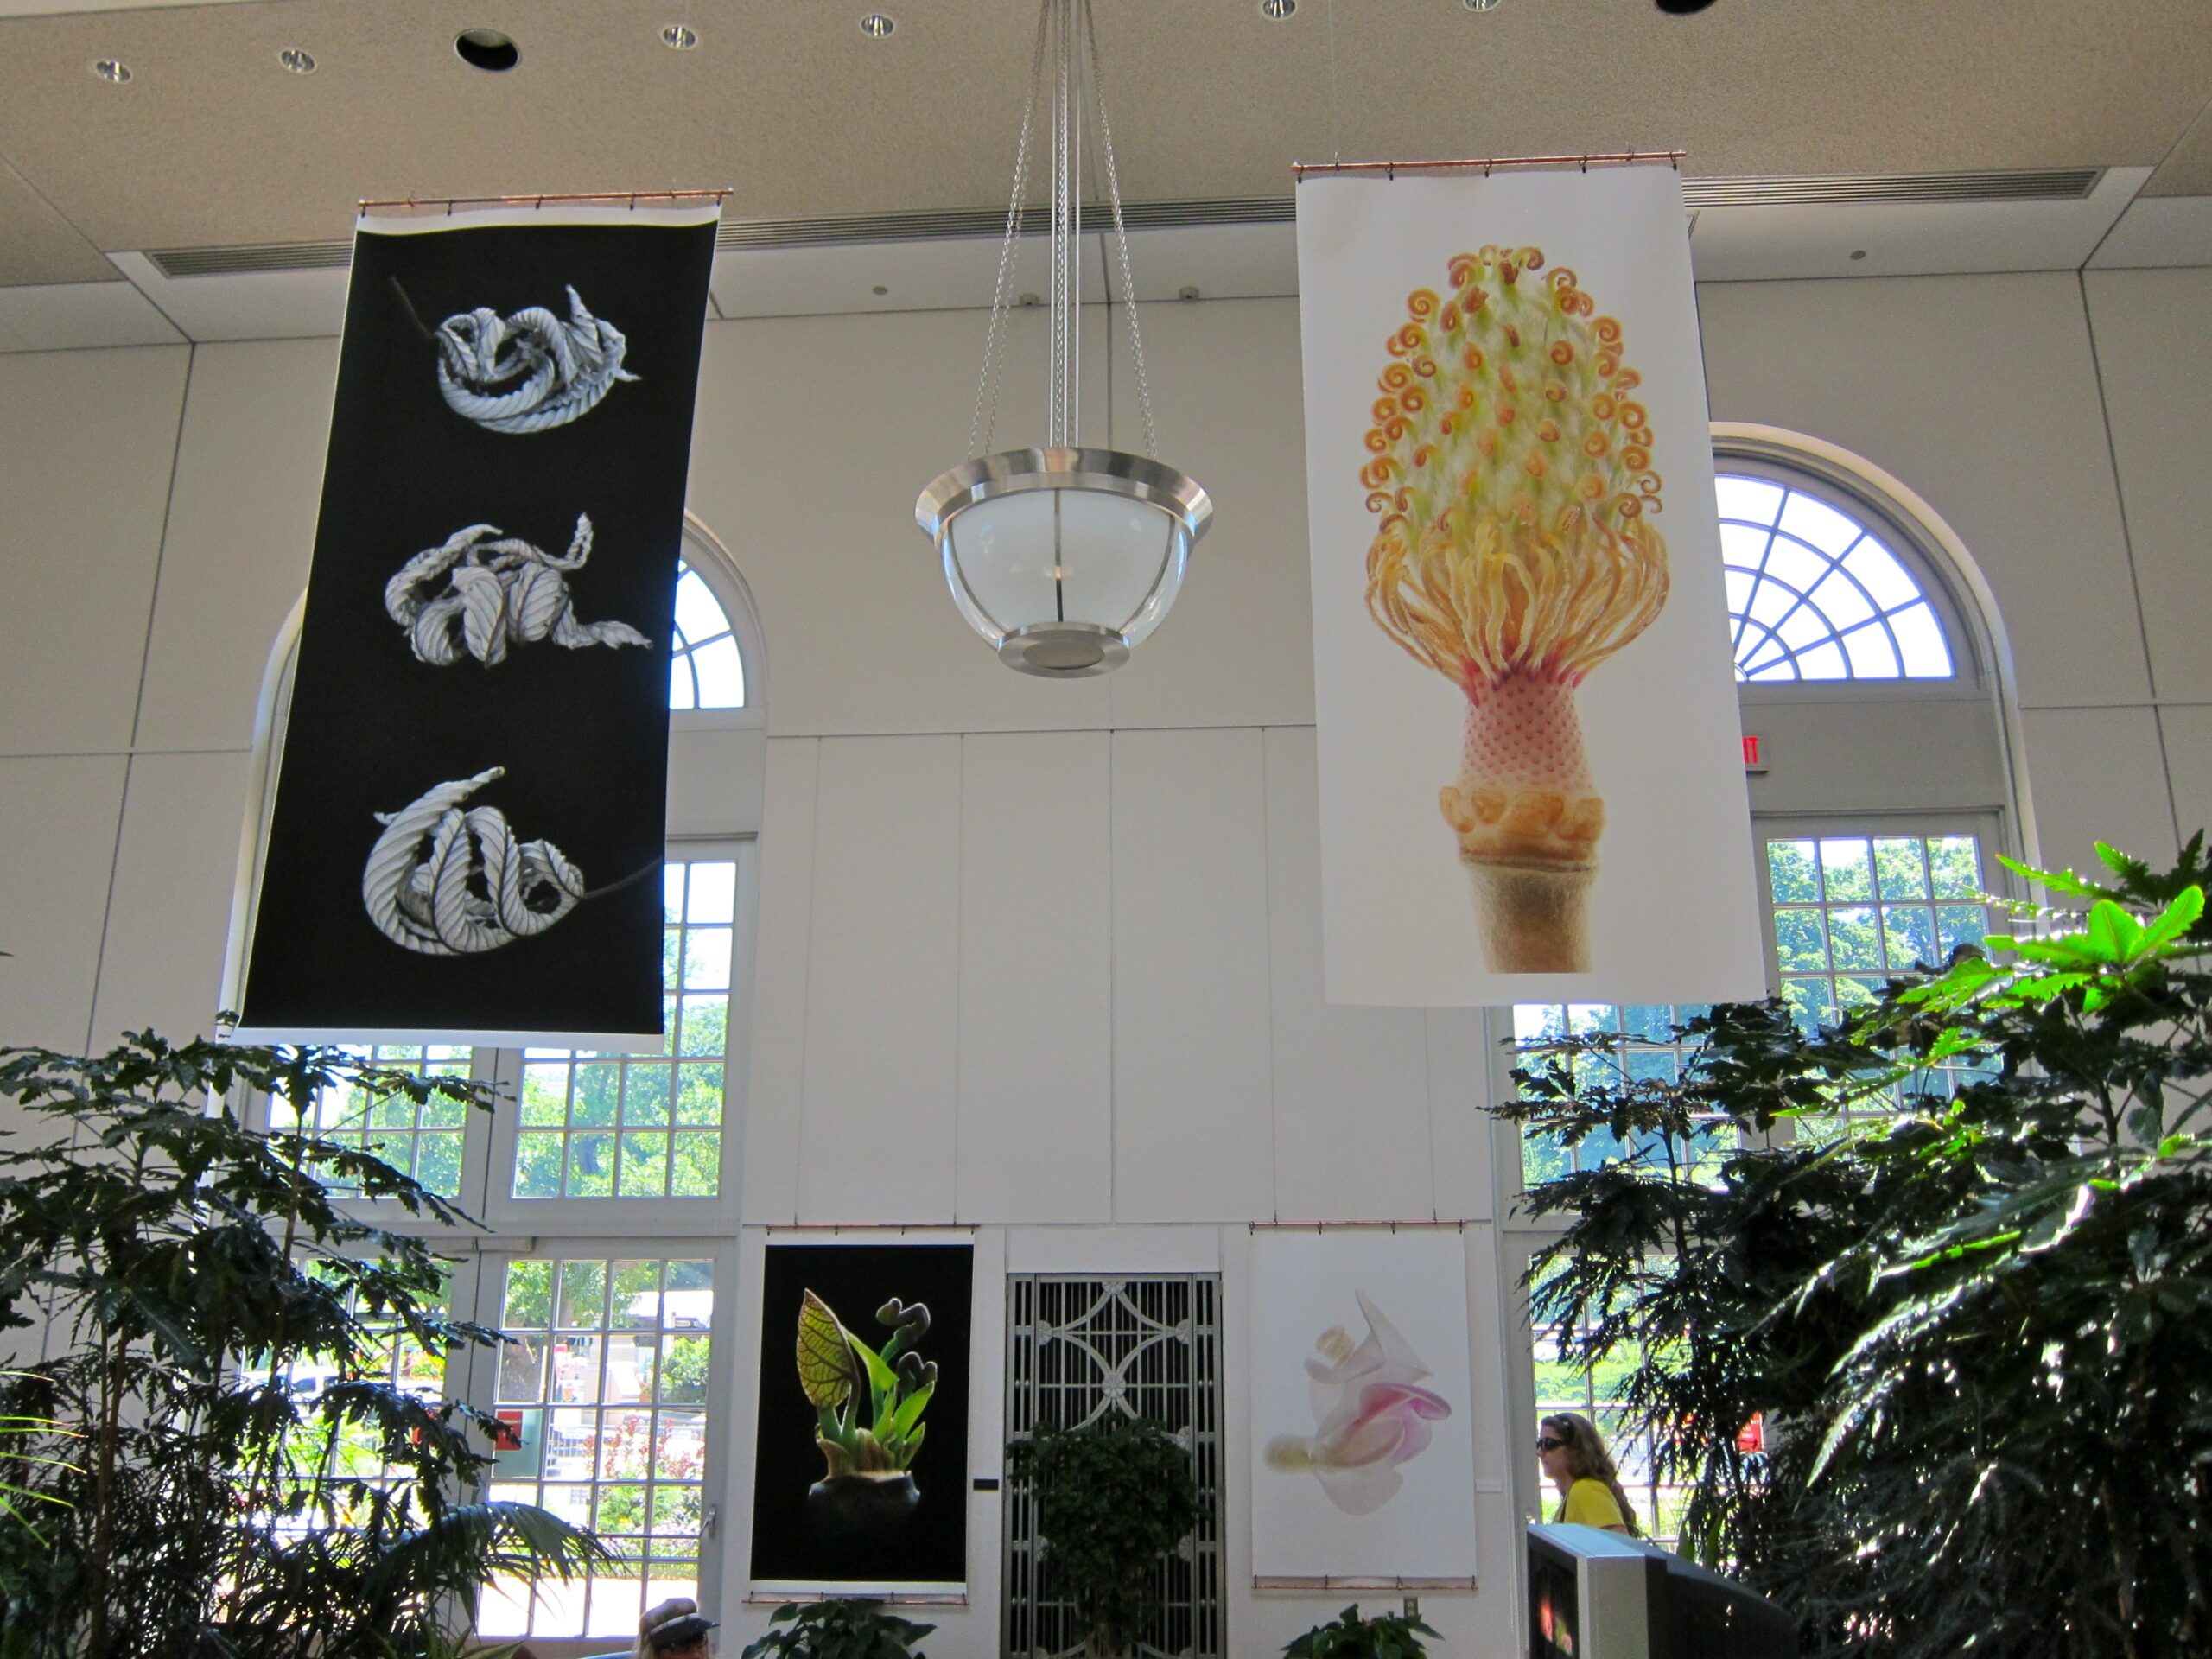 The United States Botanic Garden (USBG) Gallery